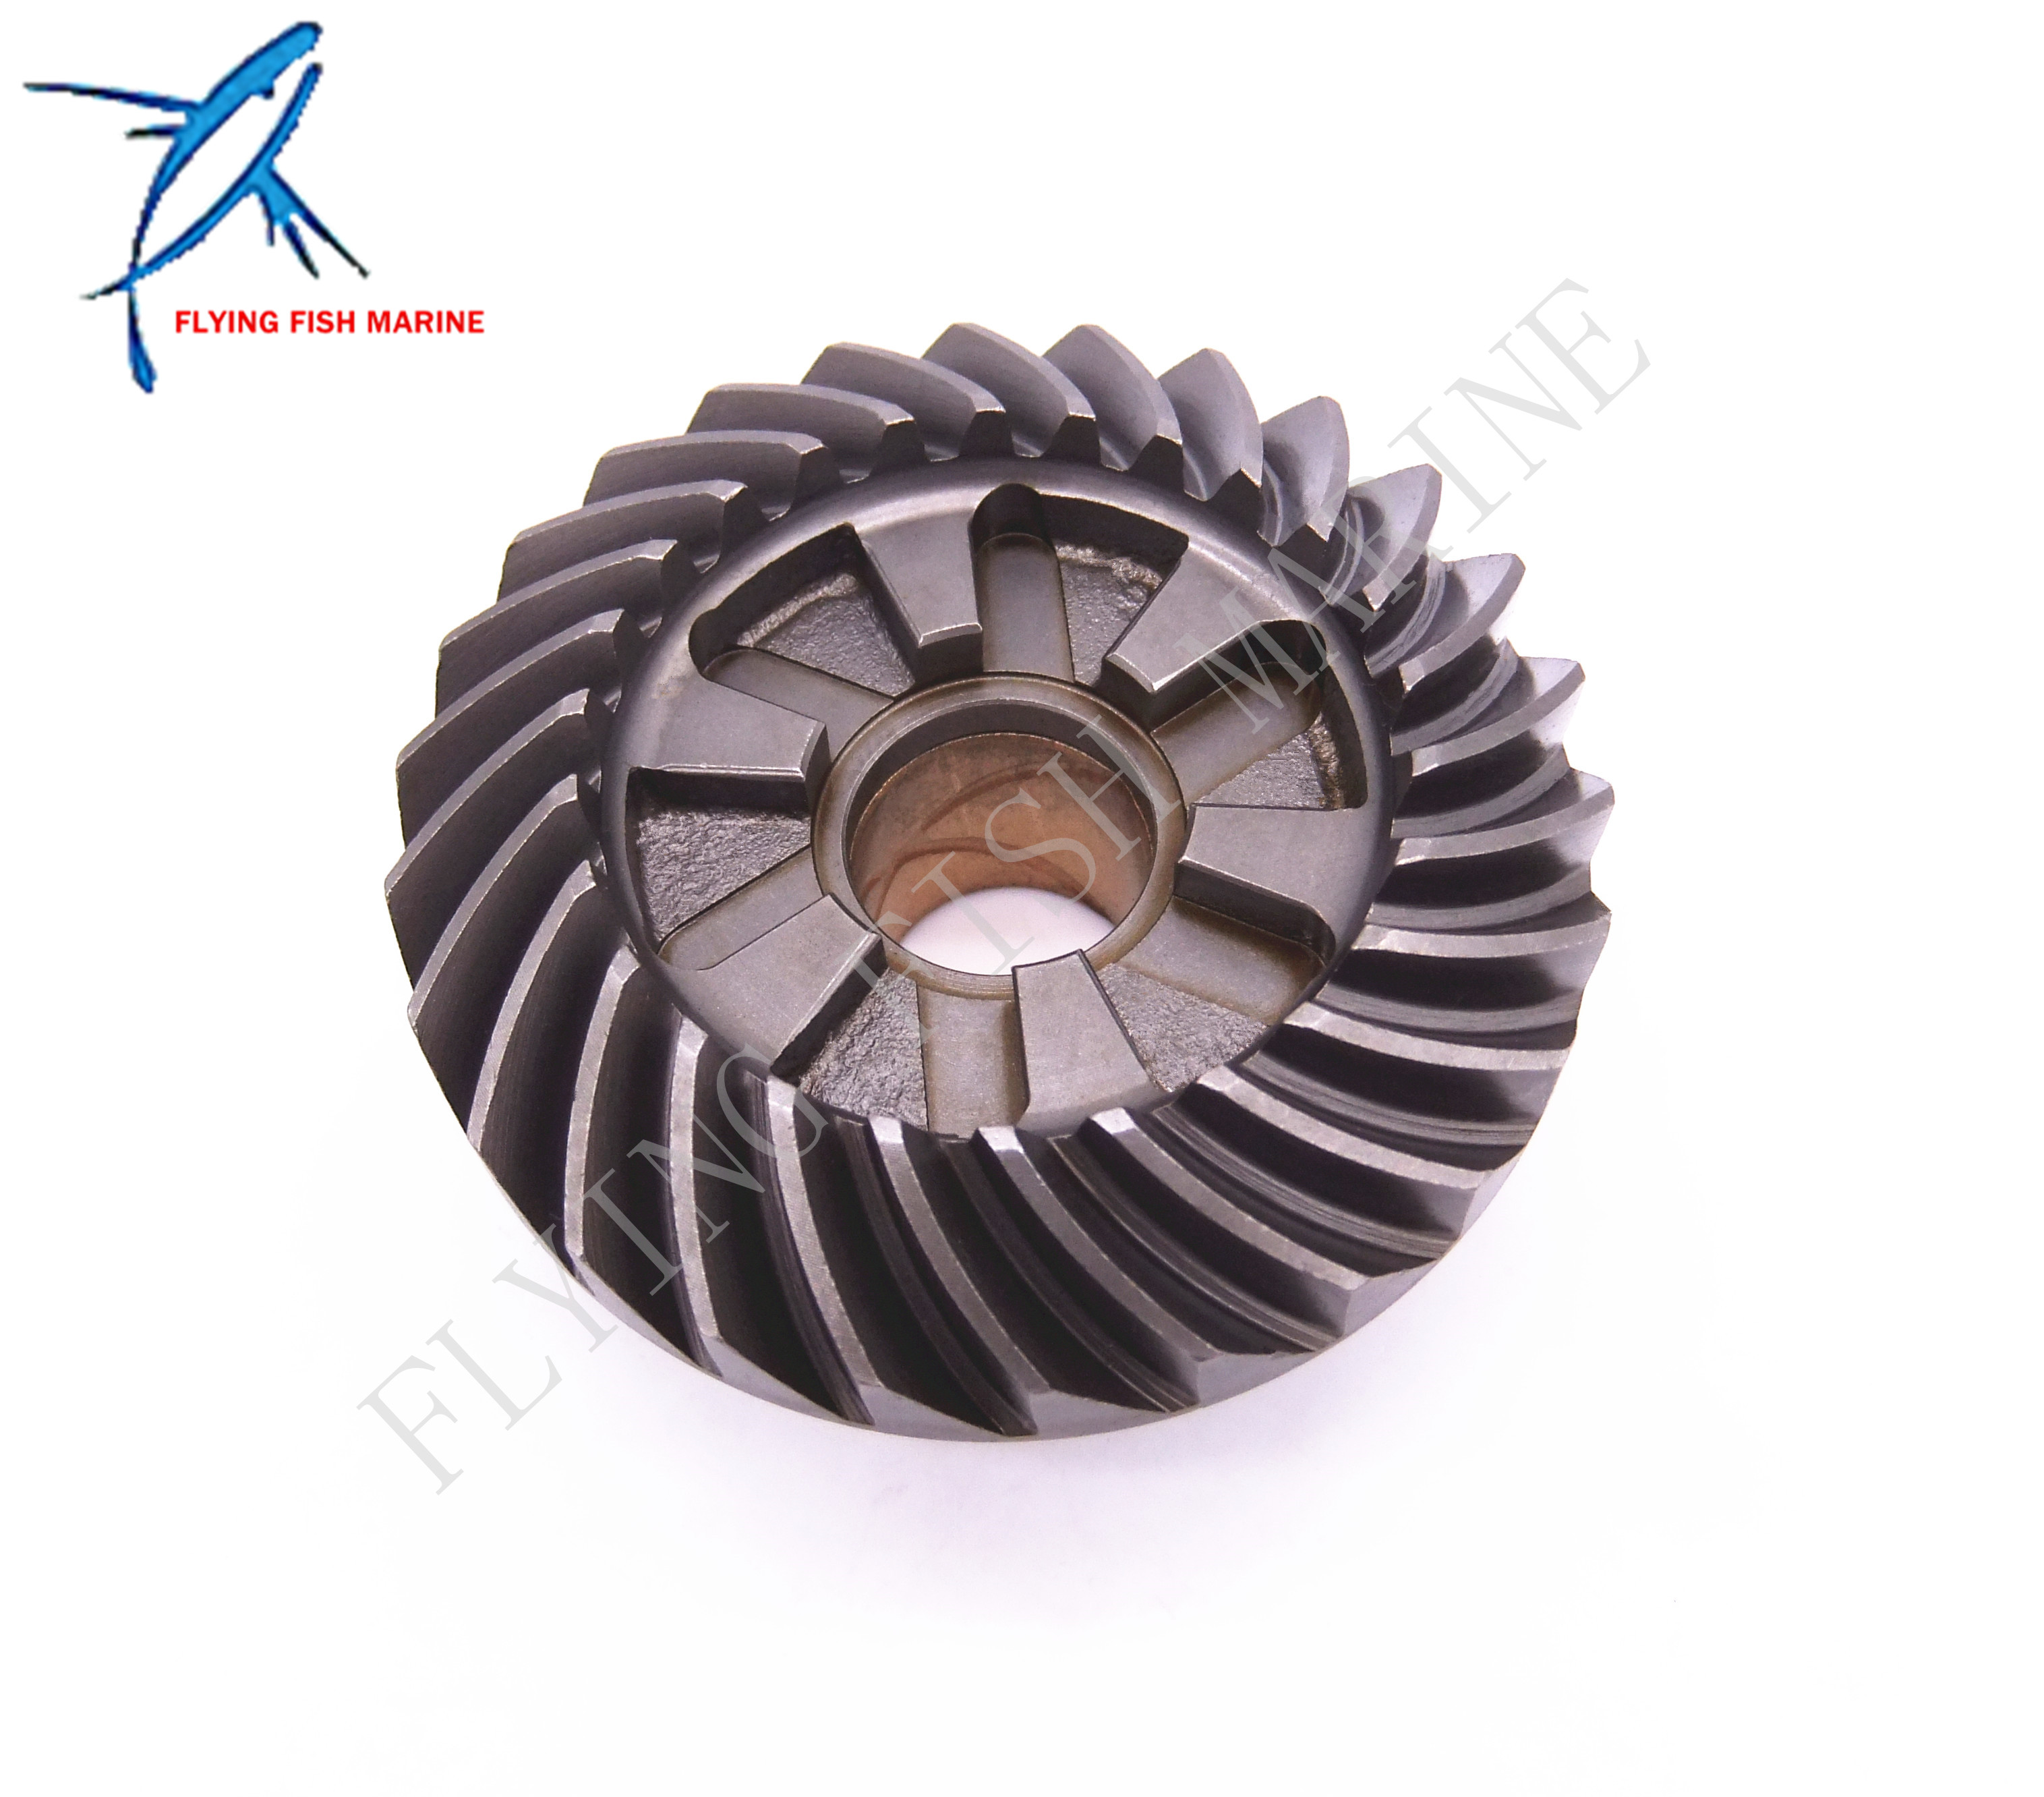 T40-04020000 Forward Gear for Parsun HDX Outboard Engine 2-Stroke T40 Boat MotorT40-04020000 Forward Gear for Parsun HDX Outboard Engine 2-Stroke T40 Boat Motor